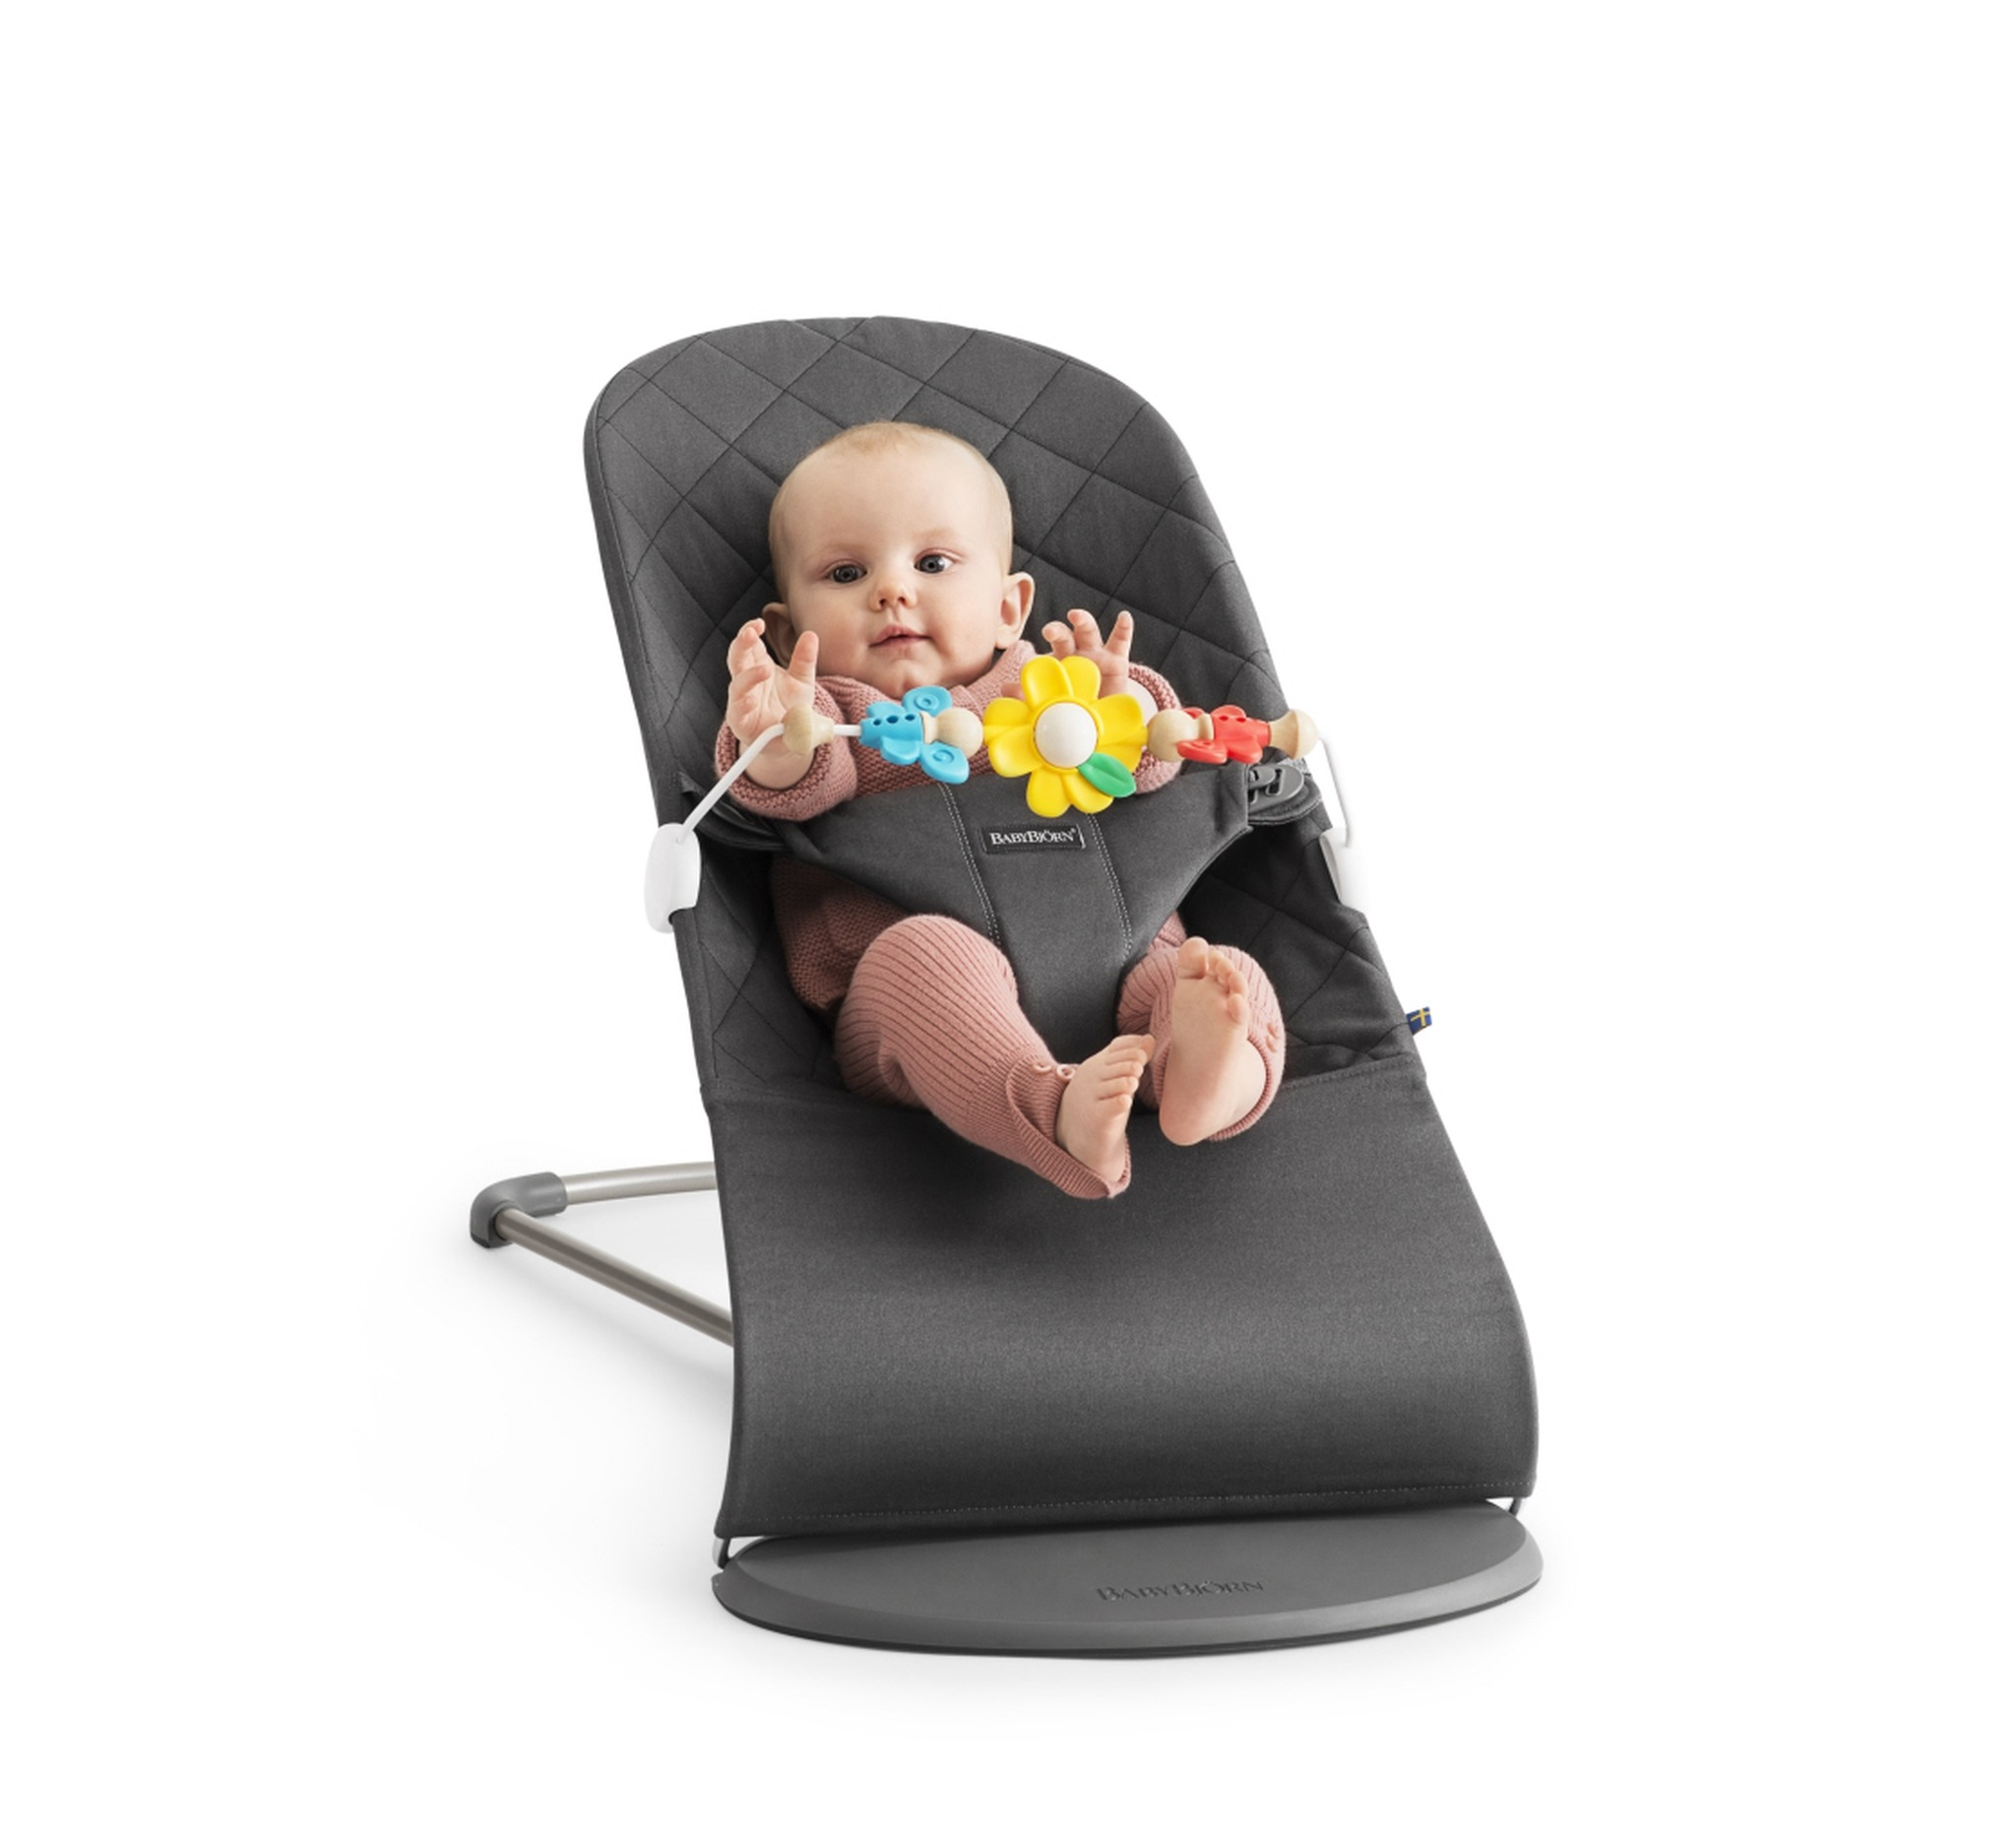 BABYBJÖRN - Bouncer Bliss - Anthracite + Toy. Antracyt   Scandinavian Baby